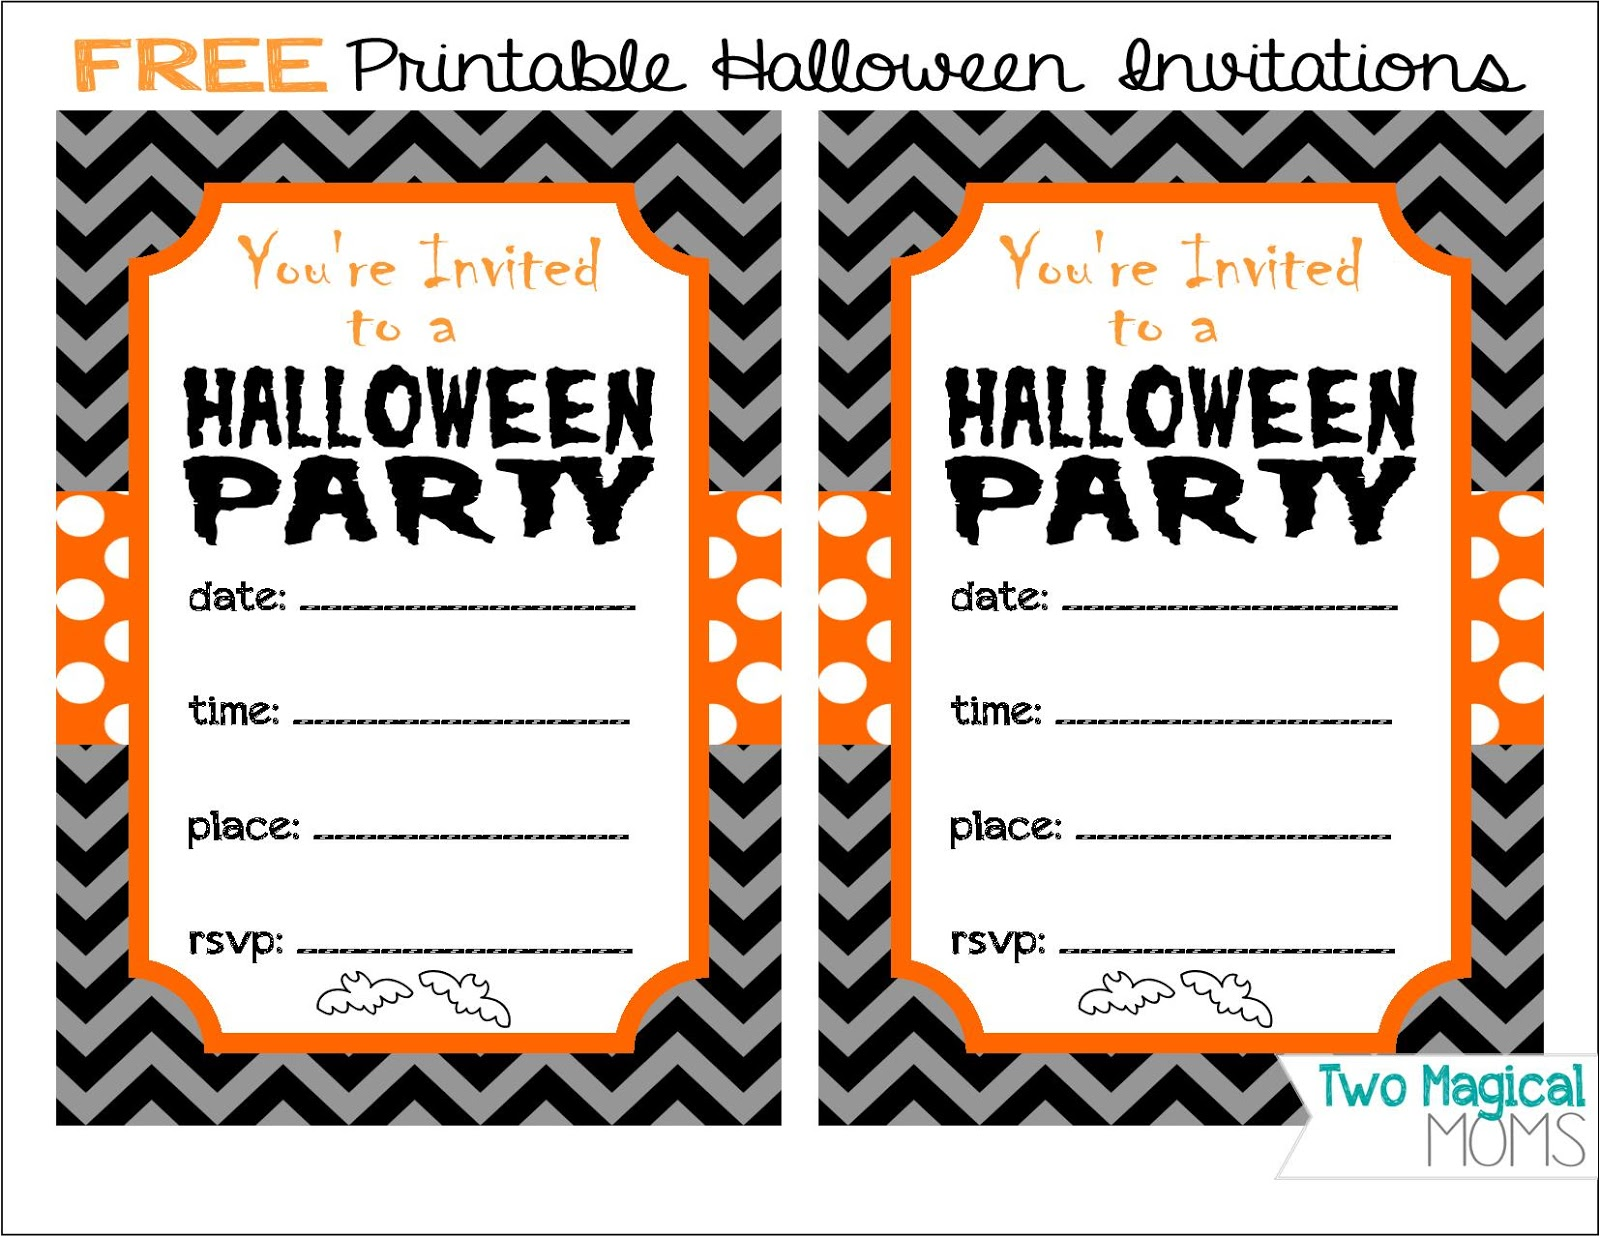 Canny image with regard to halloween invites printable